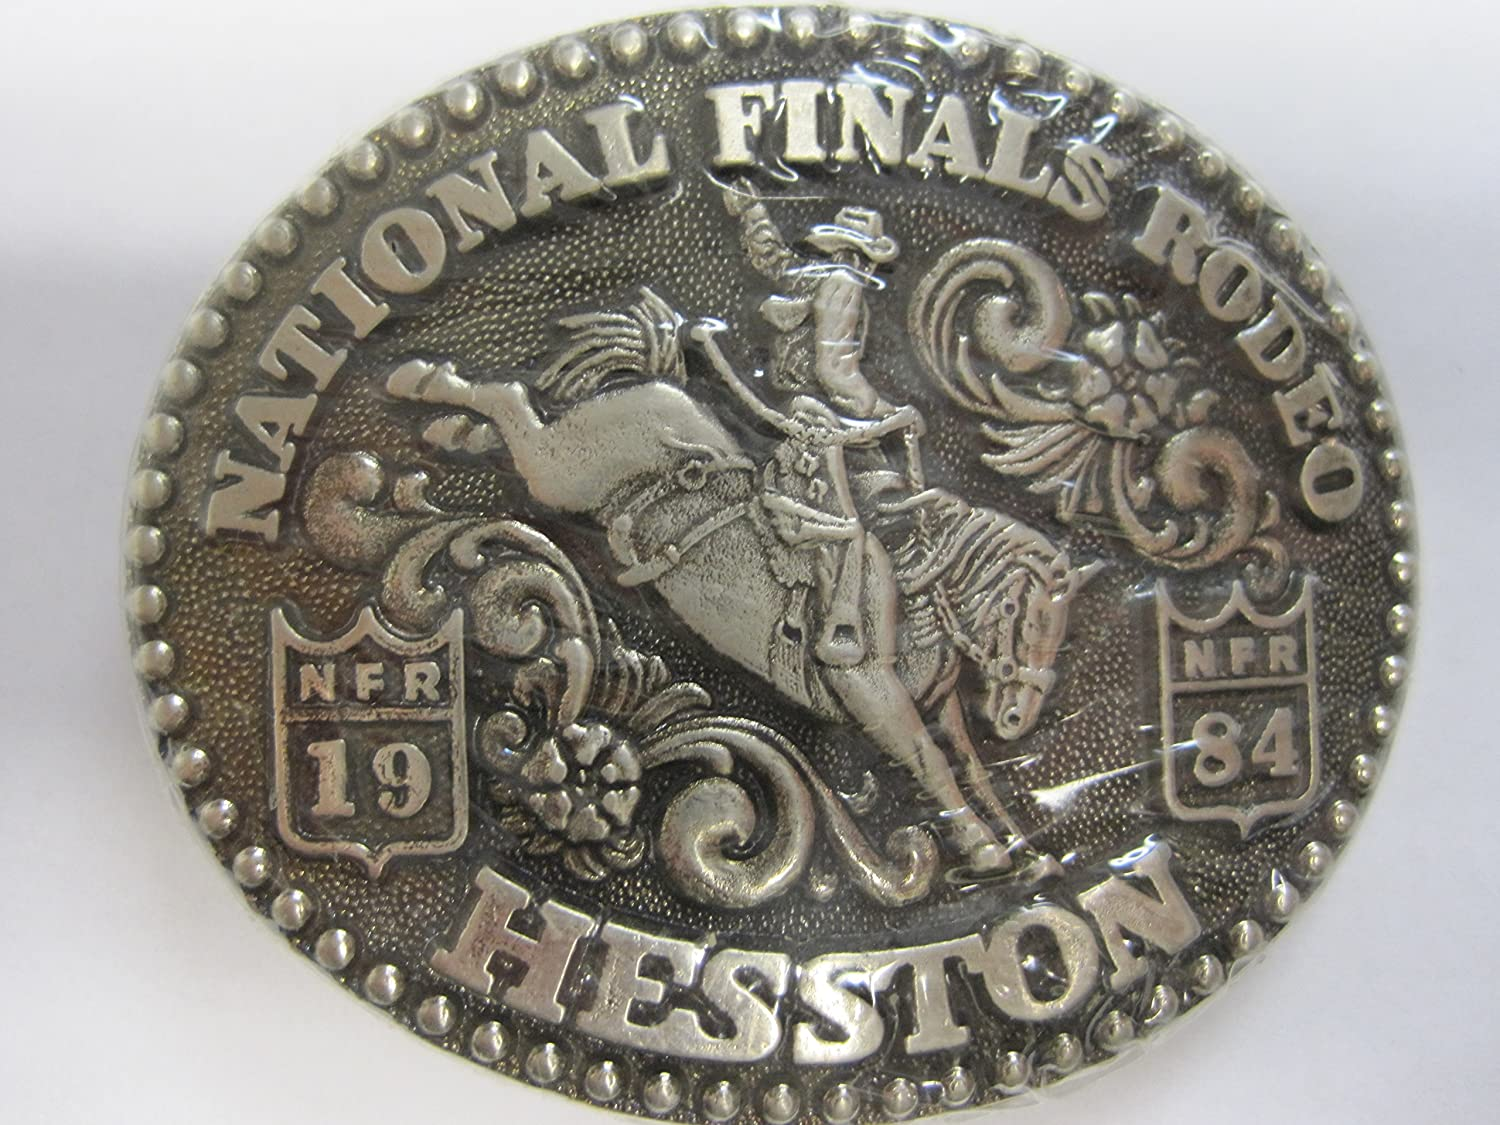 Vintage 1984 National Finals Rodeo Hesston Nfr Buckle WhiteCasting